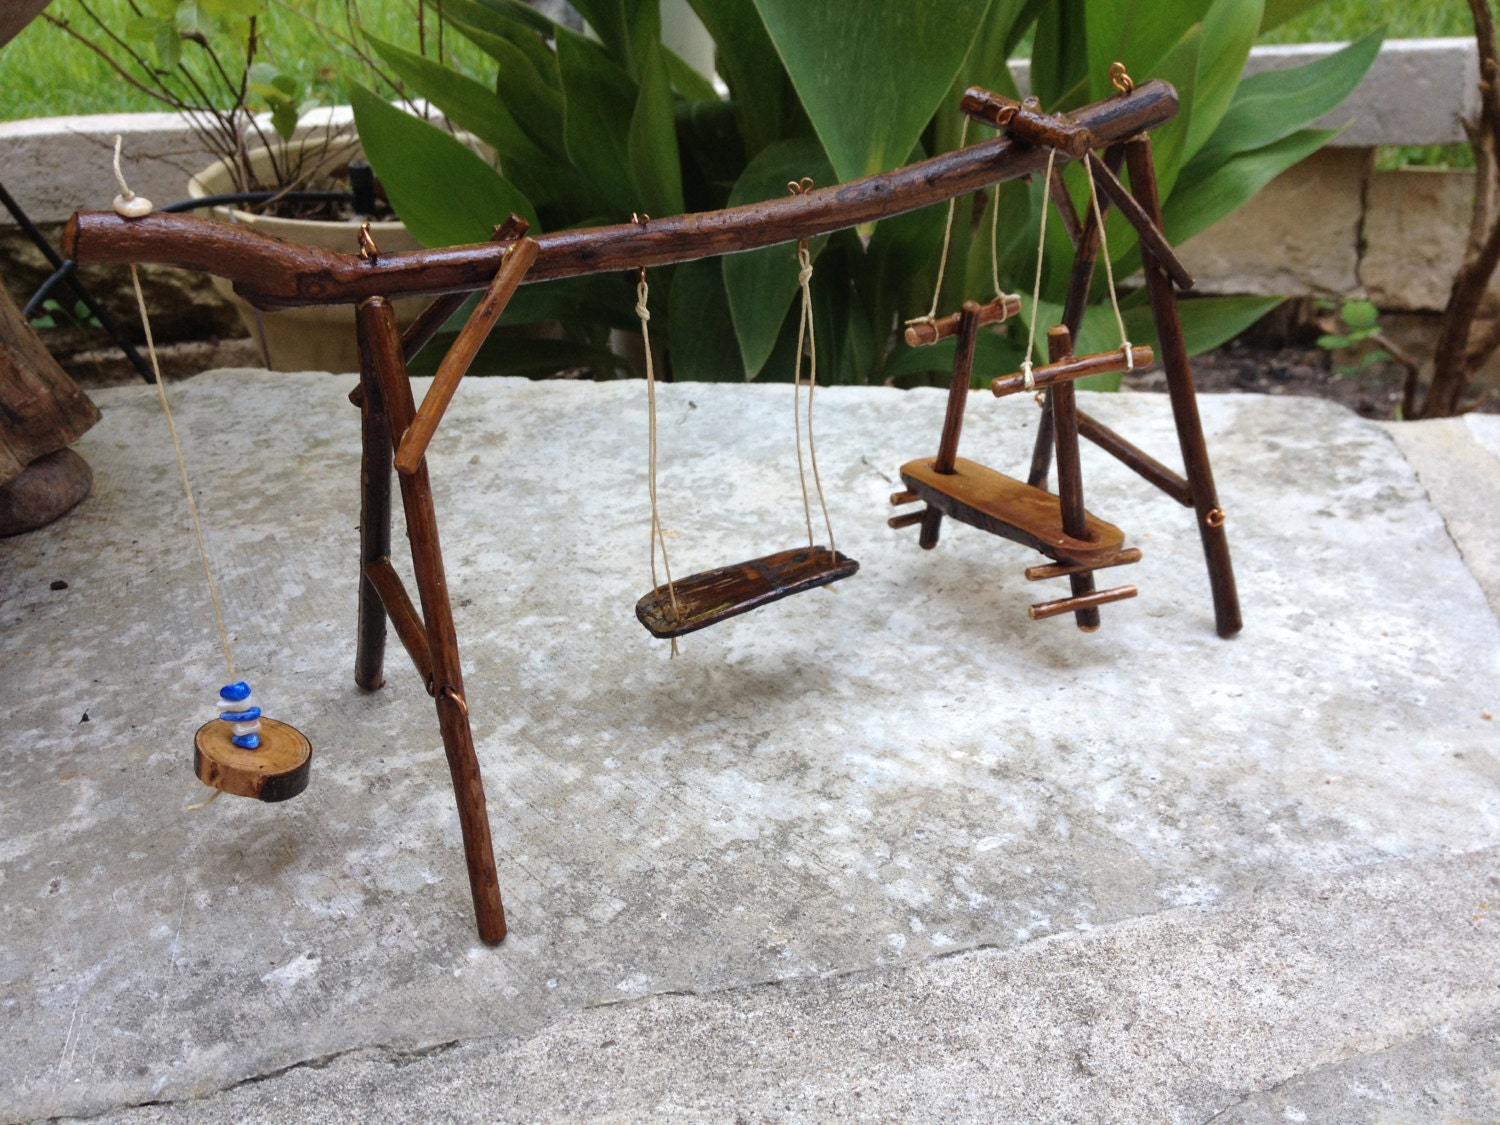 miniature fairy garden swing set. Black Bedroom Furniture Sets. Home Design Ideas